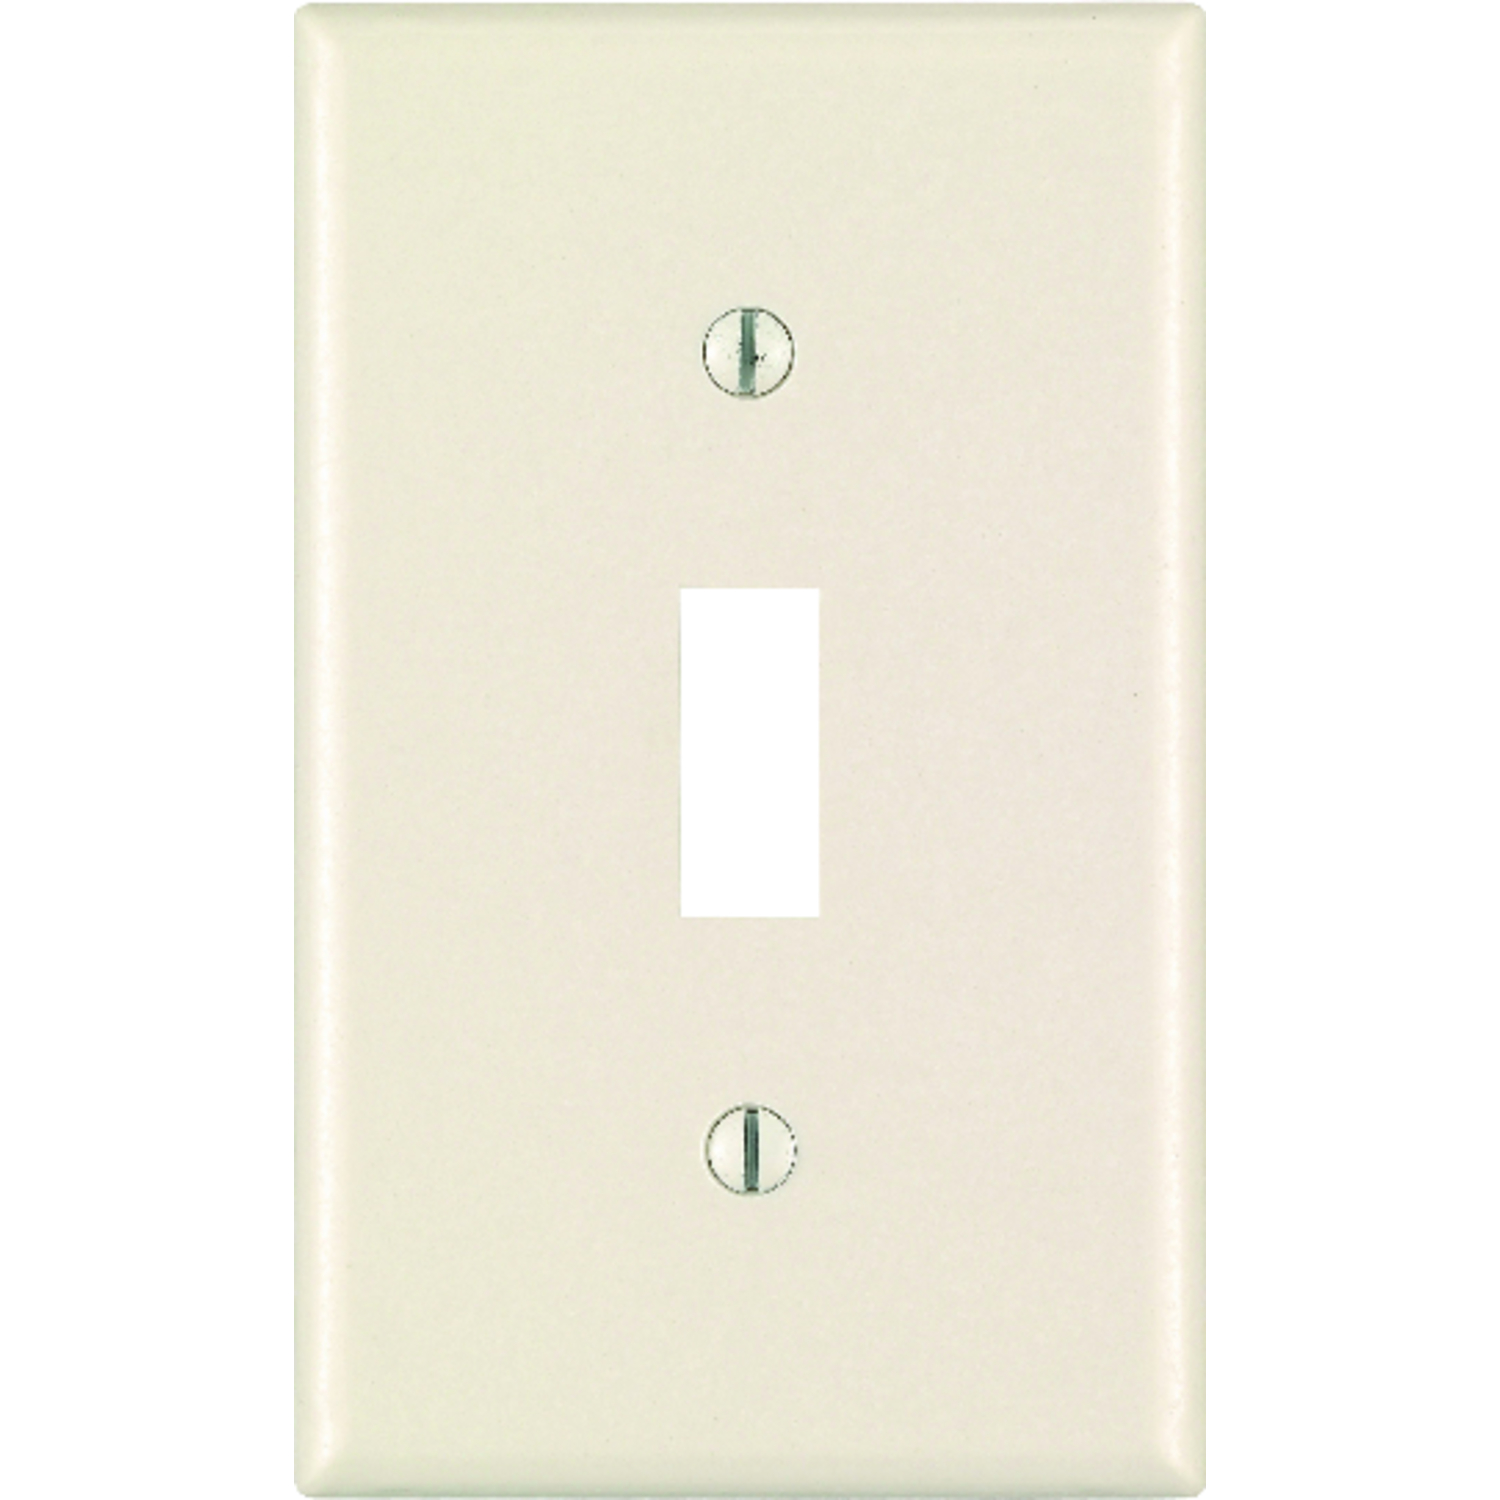 Leviton  Almond  1 gang Plastic  Wall Plate  1 pk Toggle